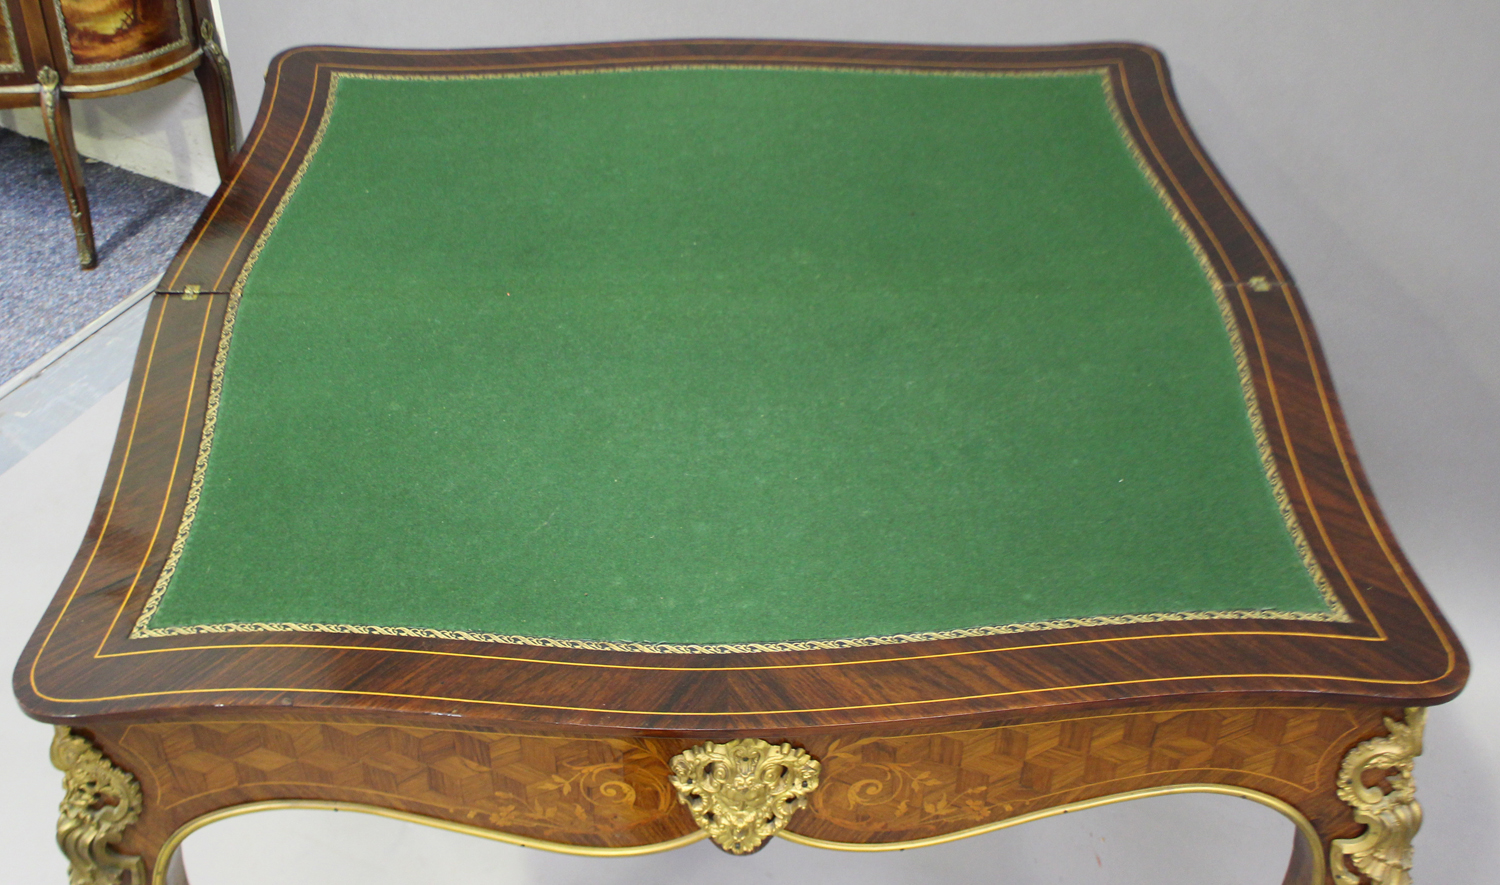 A late 19th century Louis XV style kingwood and parquetry veneered fold-over card table with gilt - Image 2 of 7